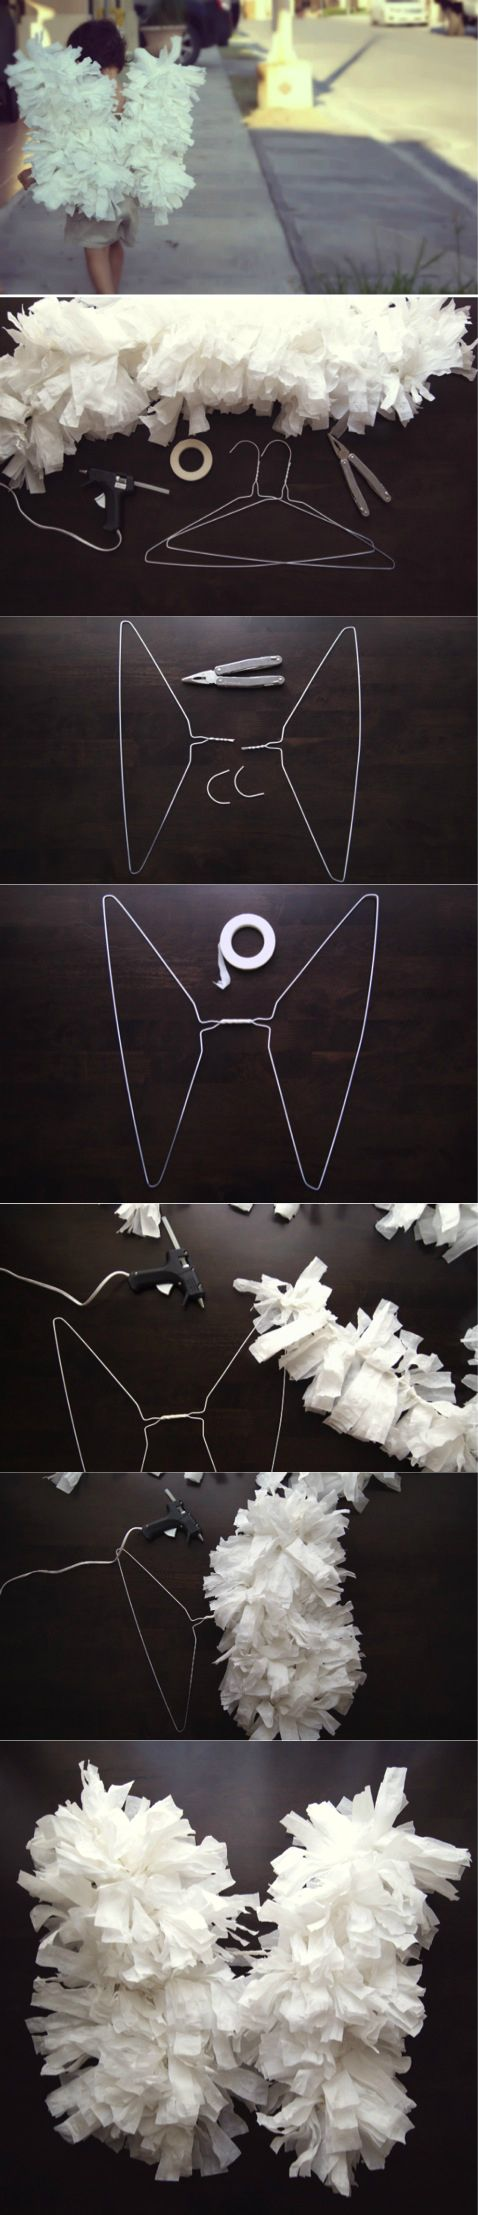 DIY angel wings using crepe paper and hangers - Cómo hacer alitas de ángel con papel crepé y ganchos.... could work as a Halloween Costume DIY: Angel